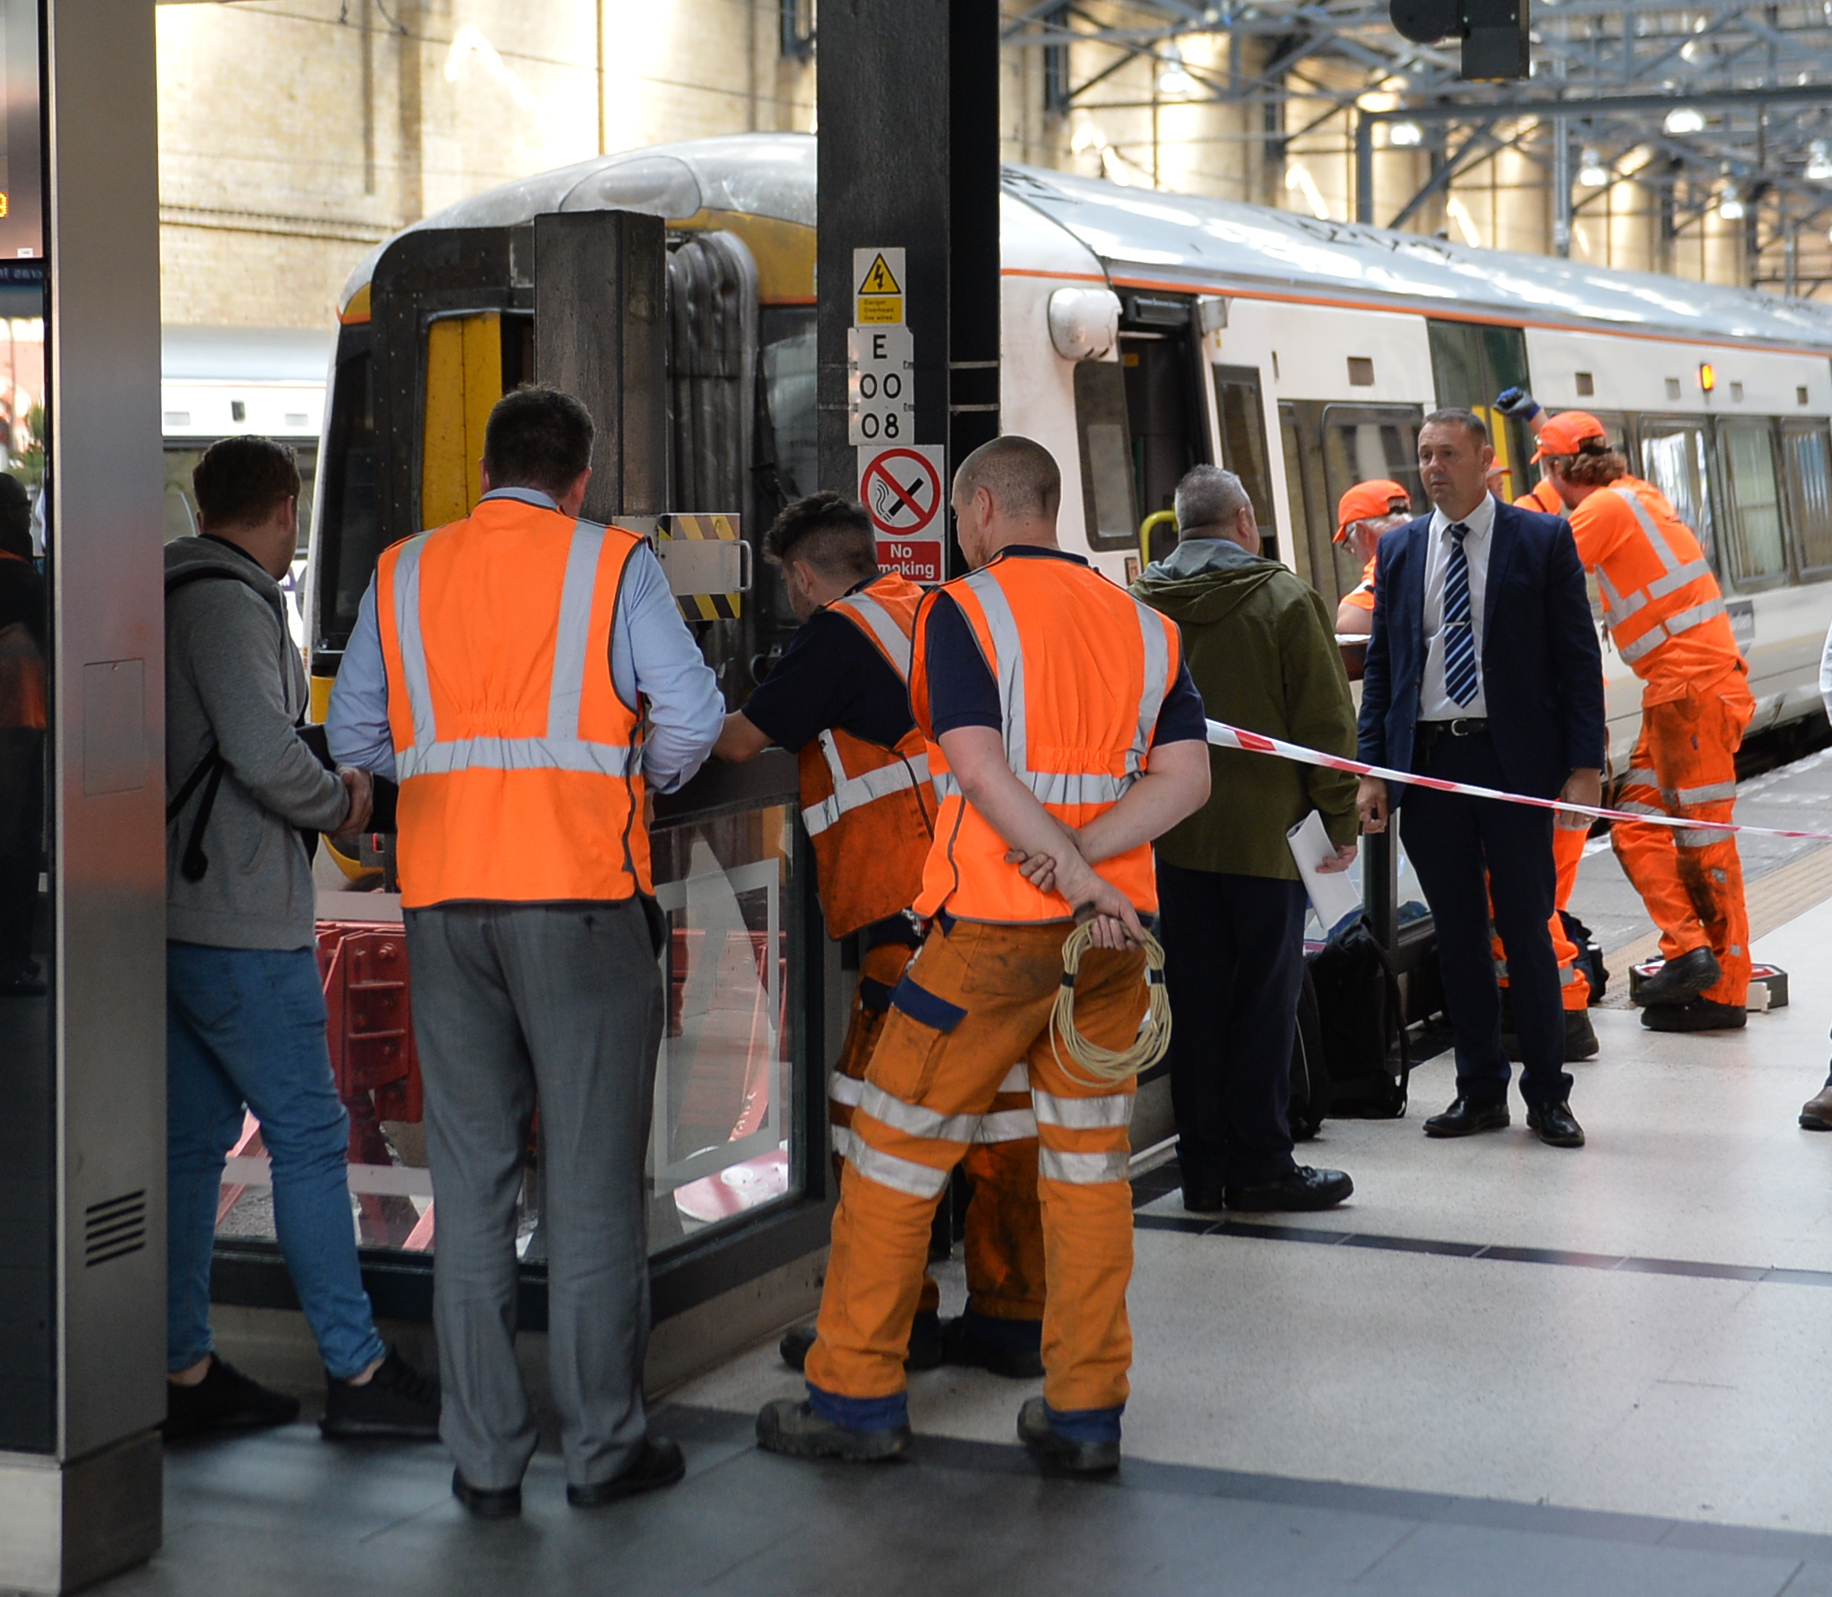 'Avoid travelling to or from Waterloo' South West Trains warns